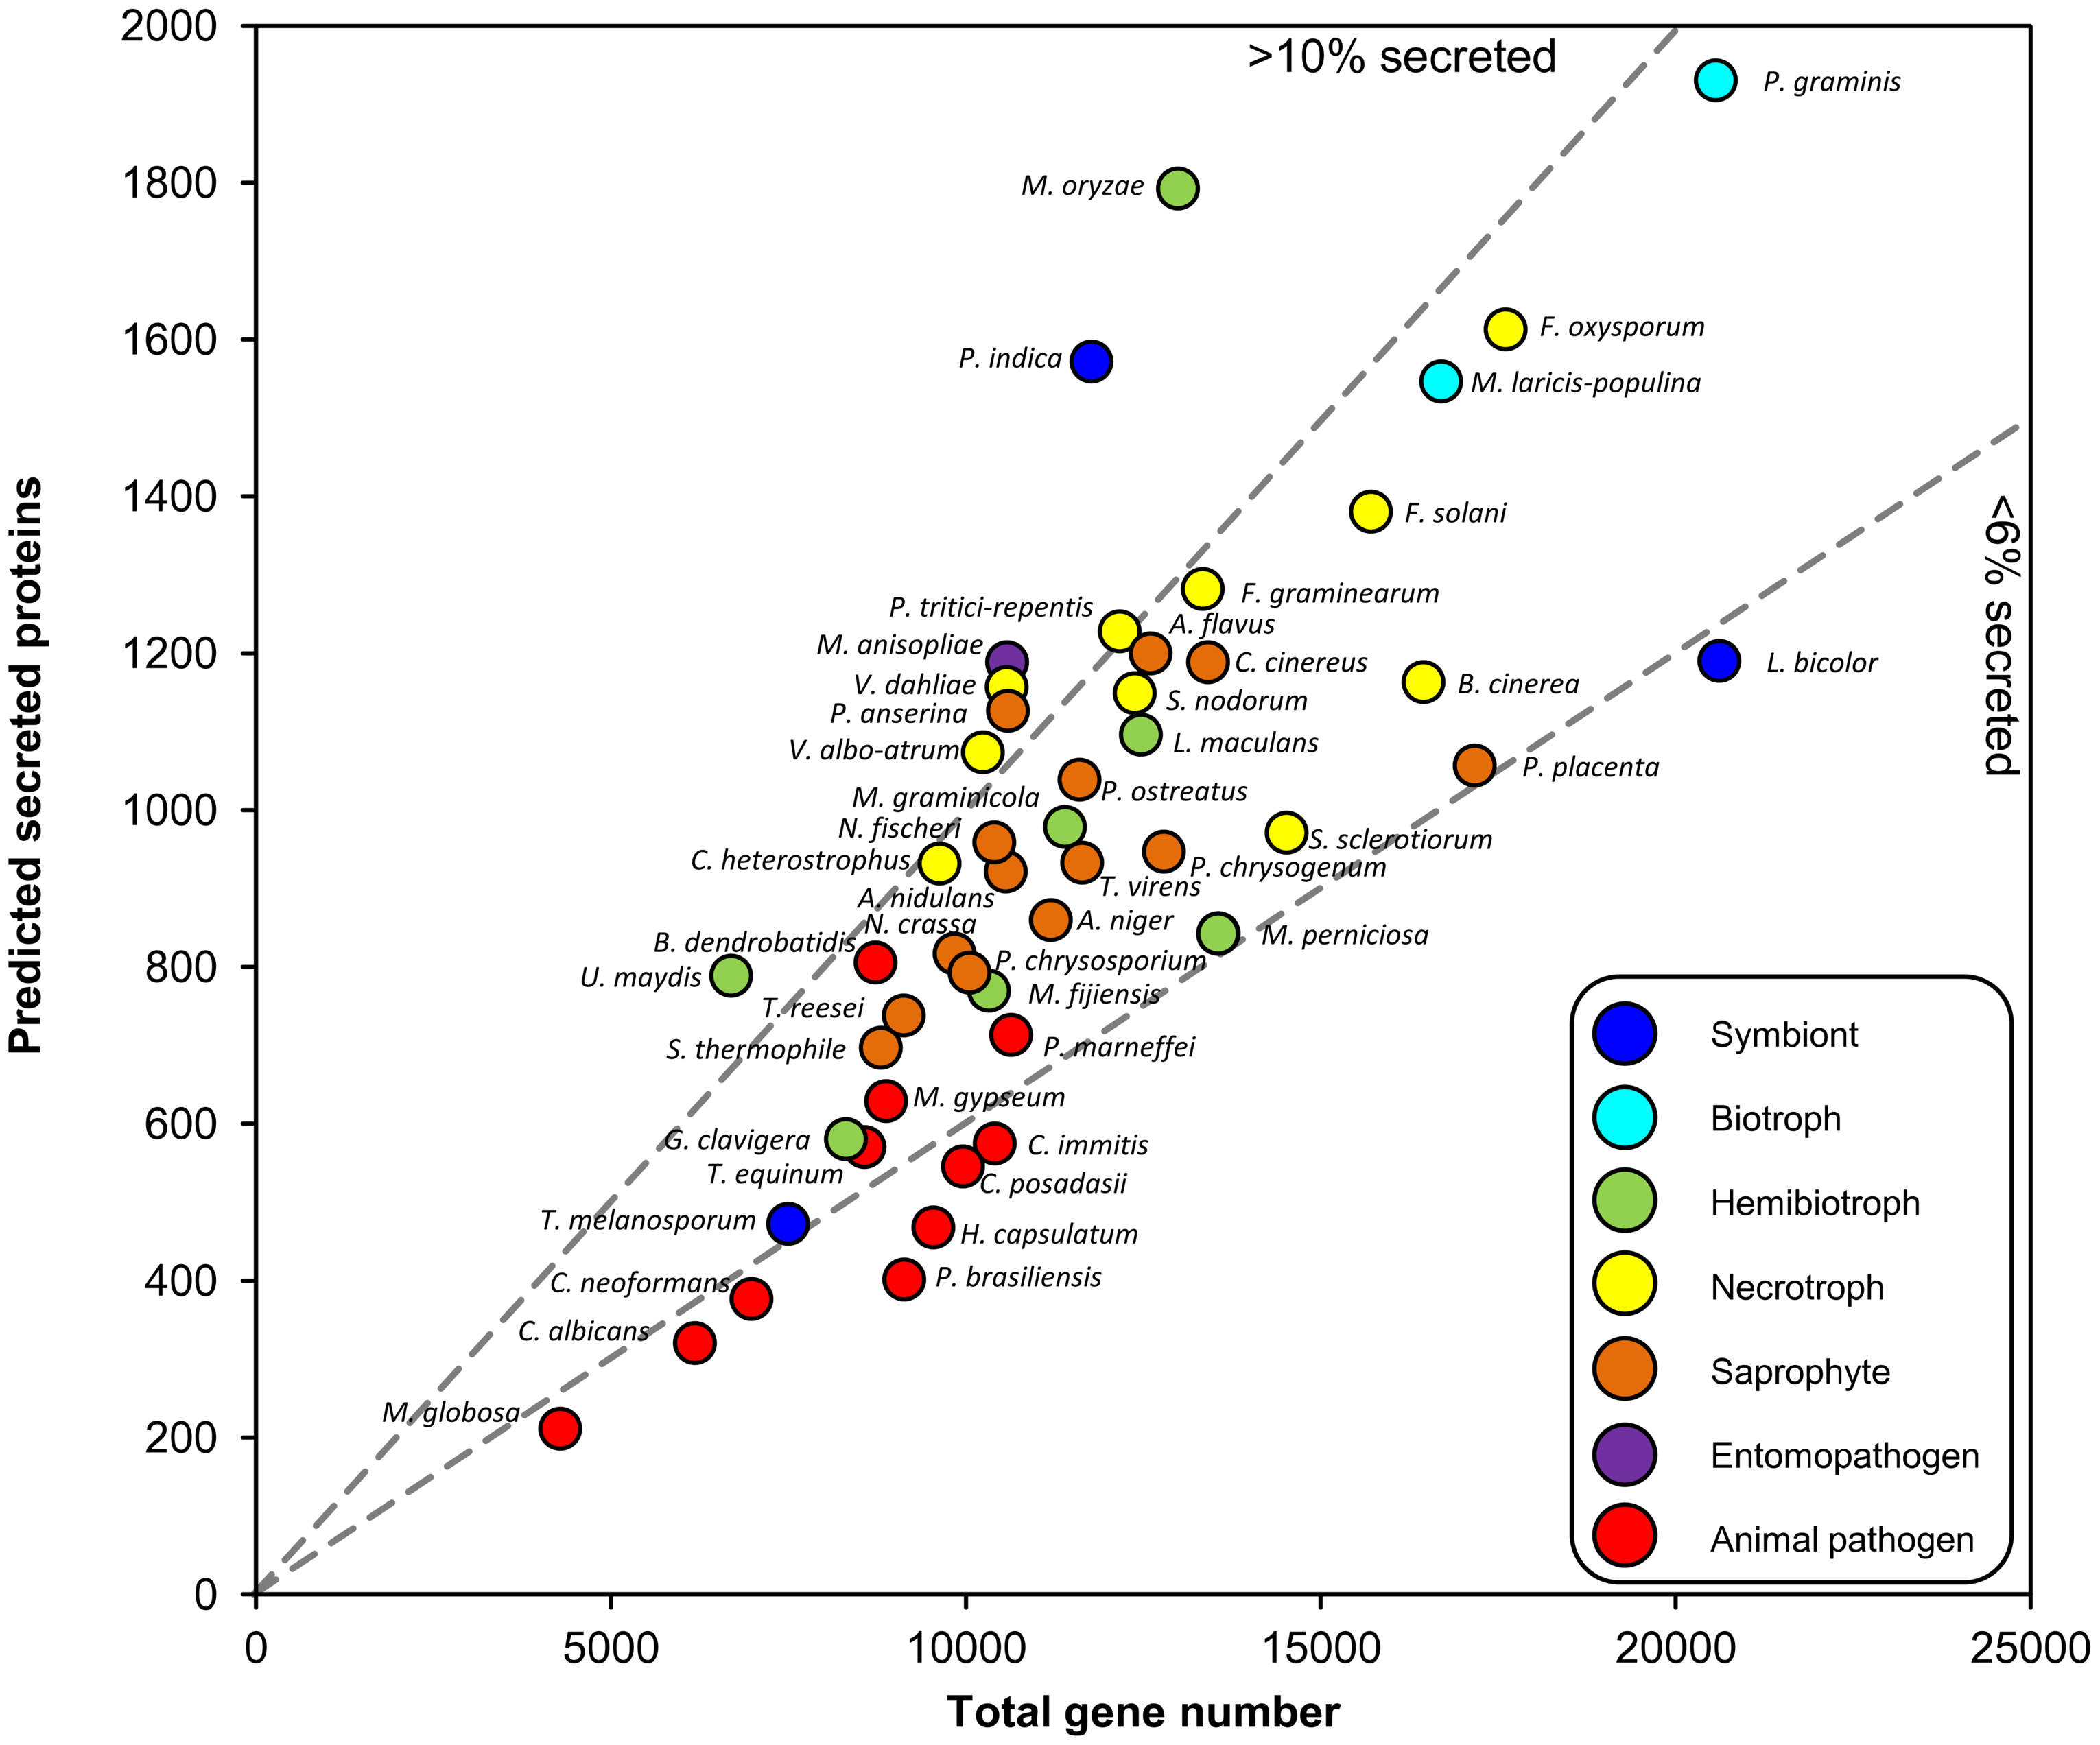 Relationship between predicted secreted protein number and total gene content of fungi.